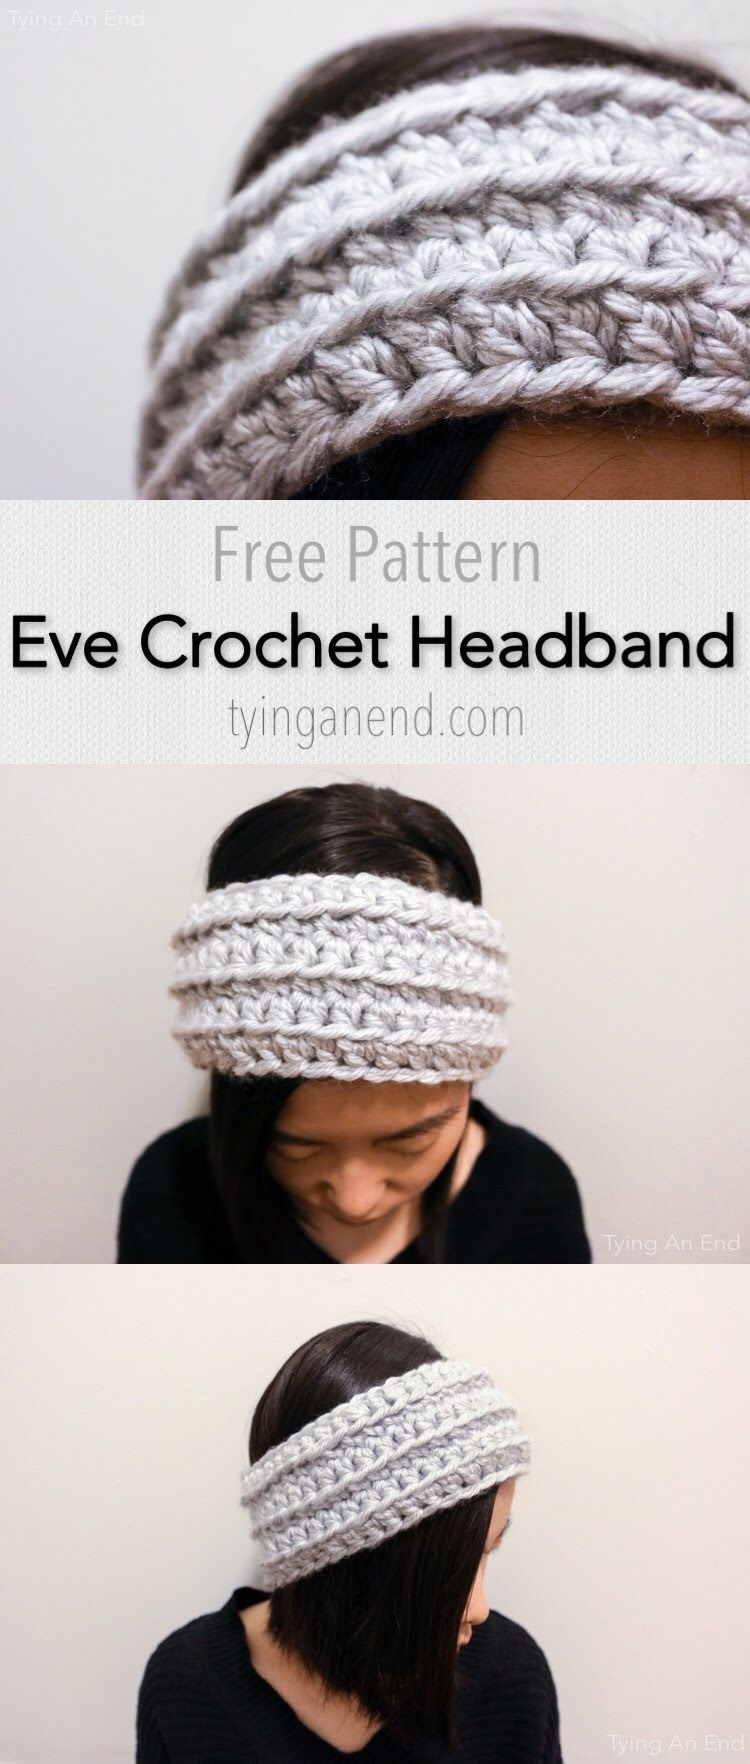 Free Crochet Pattern] Quick 30 minutes crochet headband for the cold ...